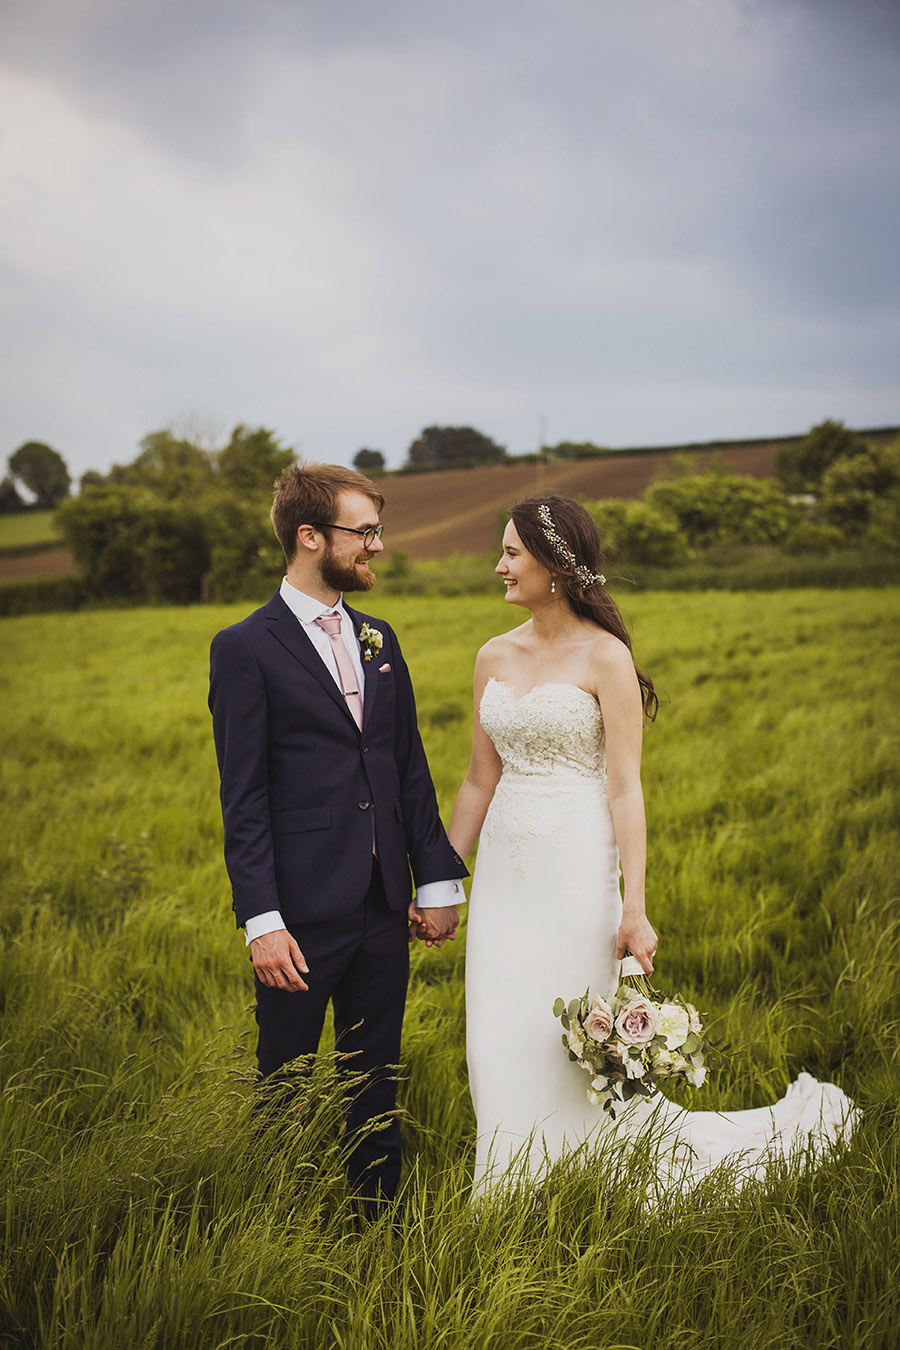 Relaxed outdoor wedding at Cott Farm Barn with images by Heather Birnie Photography on the English Wedding Blog (43)